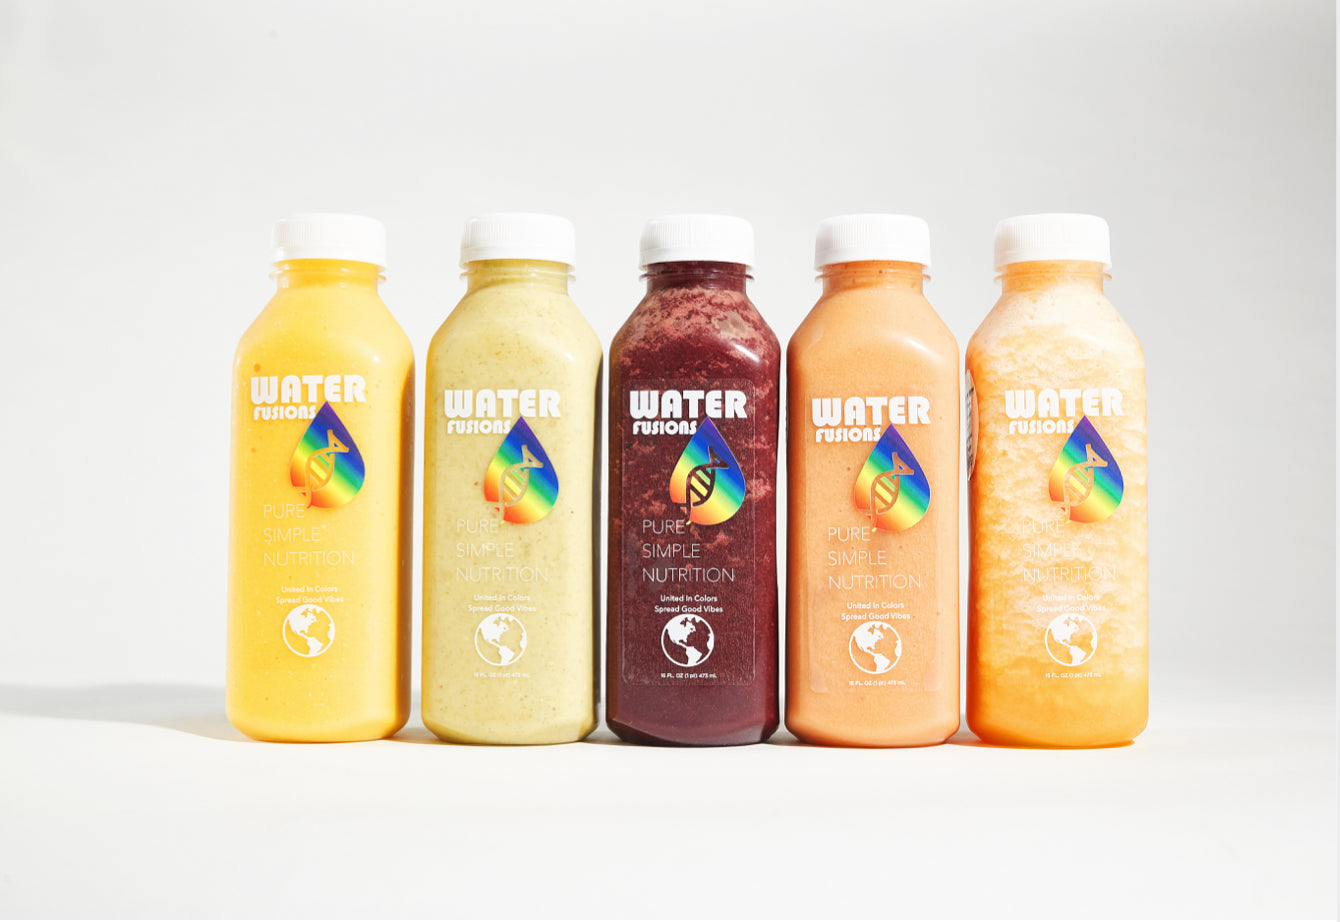 Organic nutrient smoothies designed with plant protein, plant adaptogens & super-fruits.